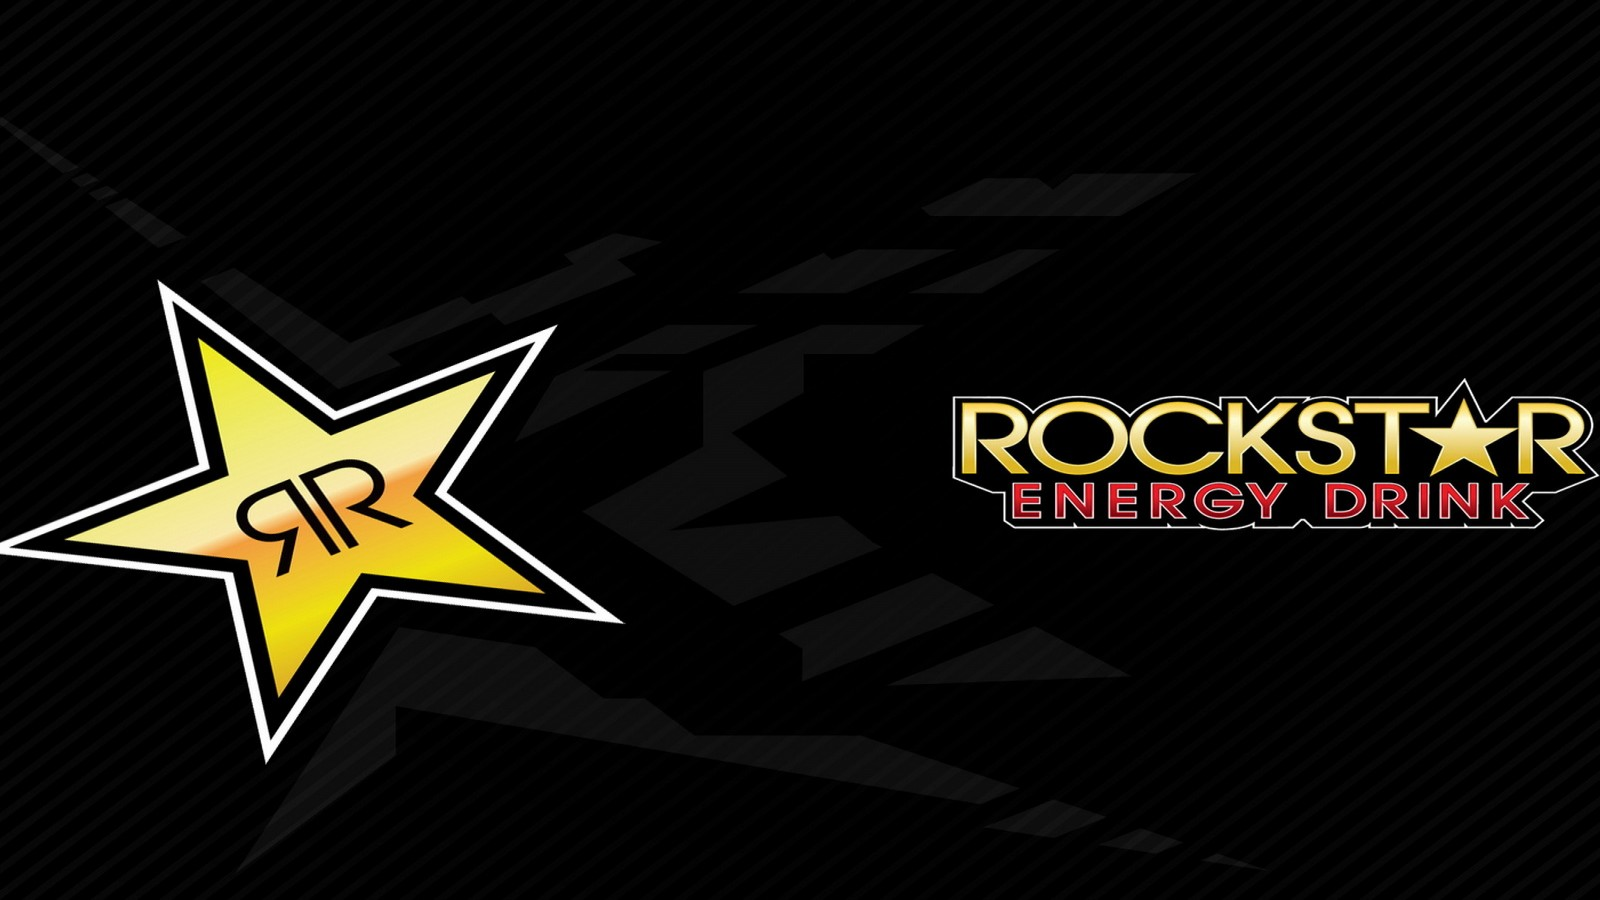 Pics Photos   1280x1024 Rockstar Energy Drink 1920x1200 1600x900